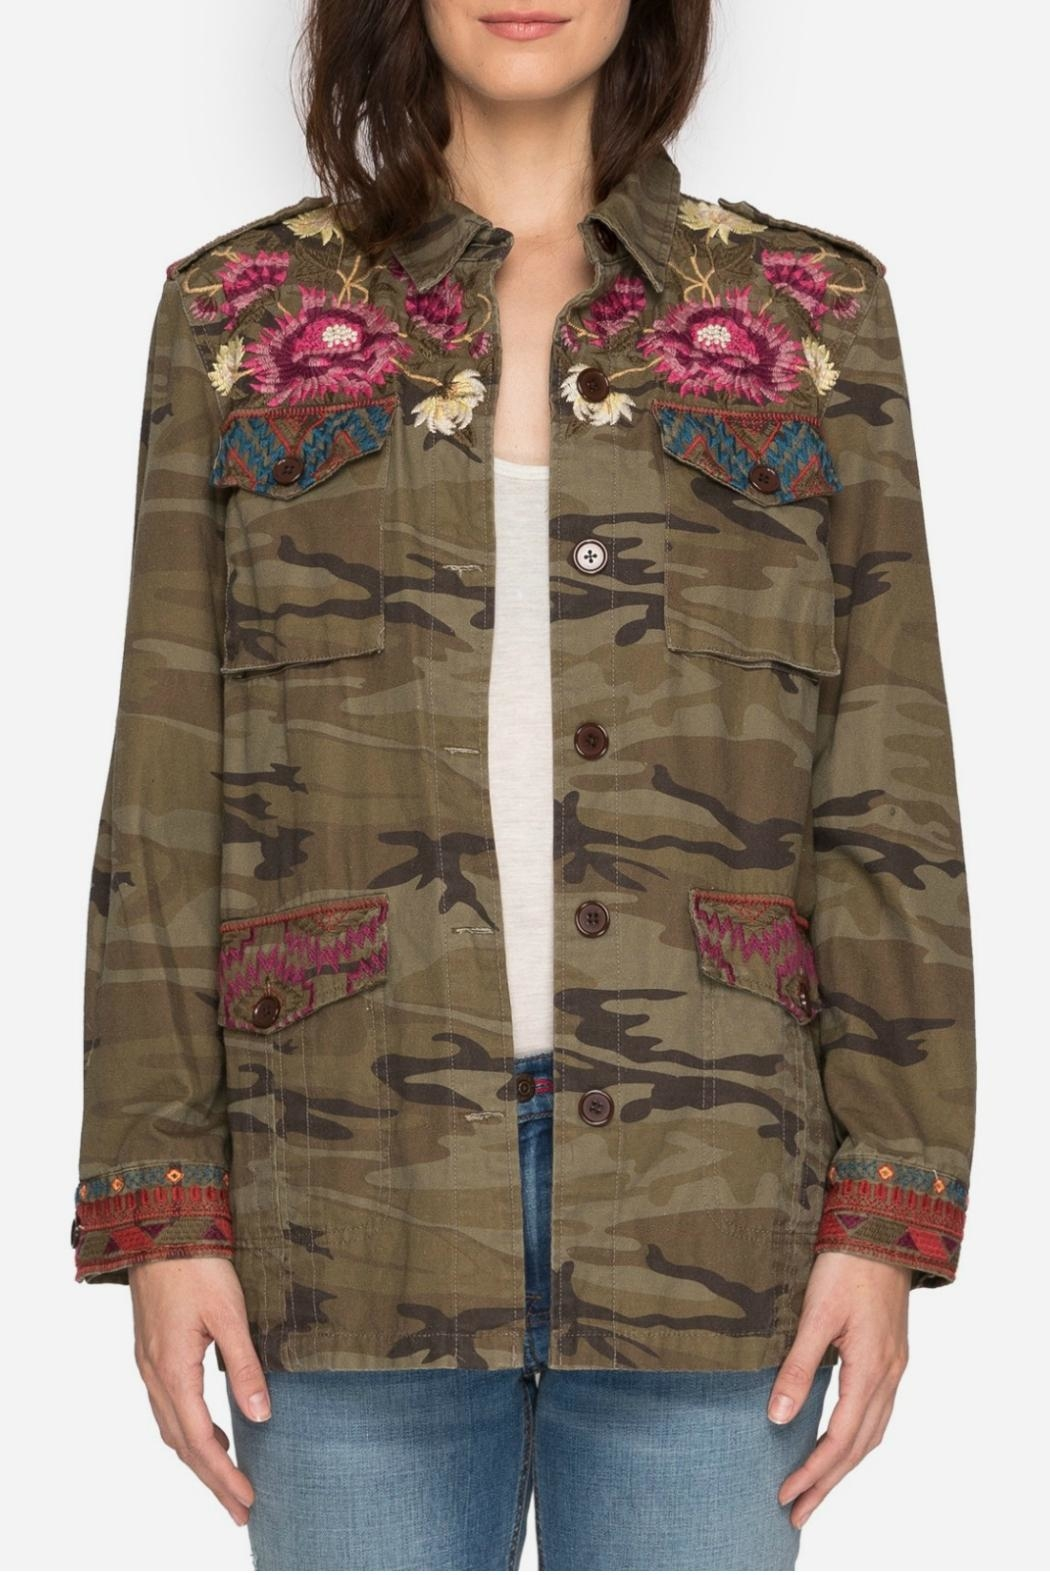 Johnny Was Military Camo Jacket - Front Full Image